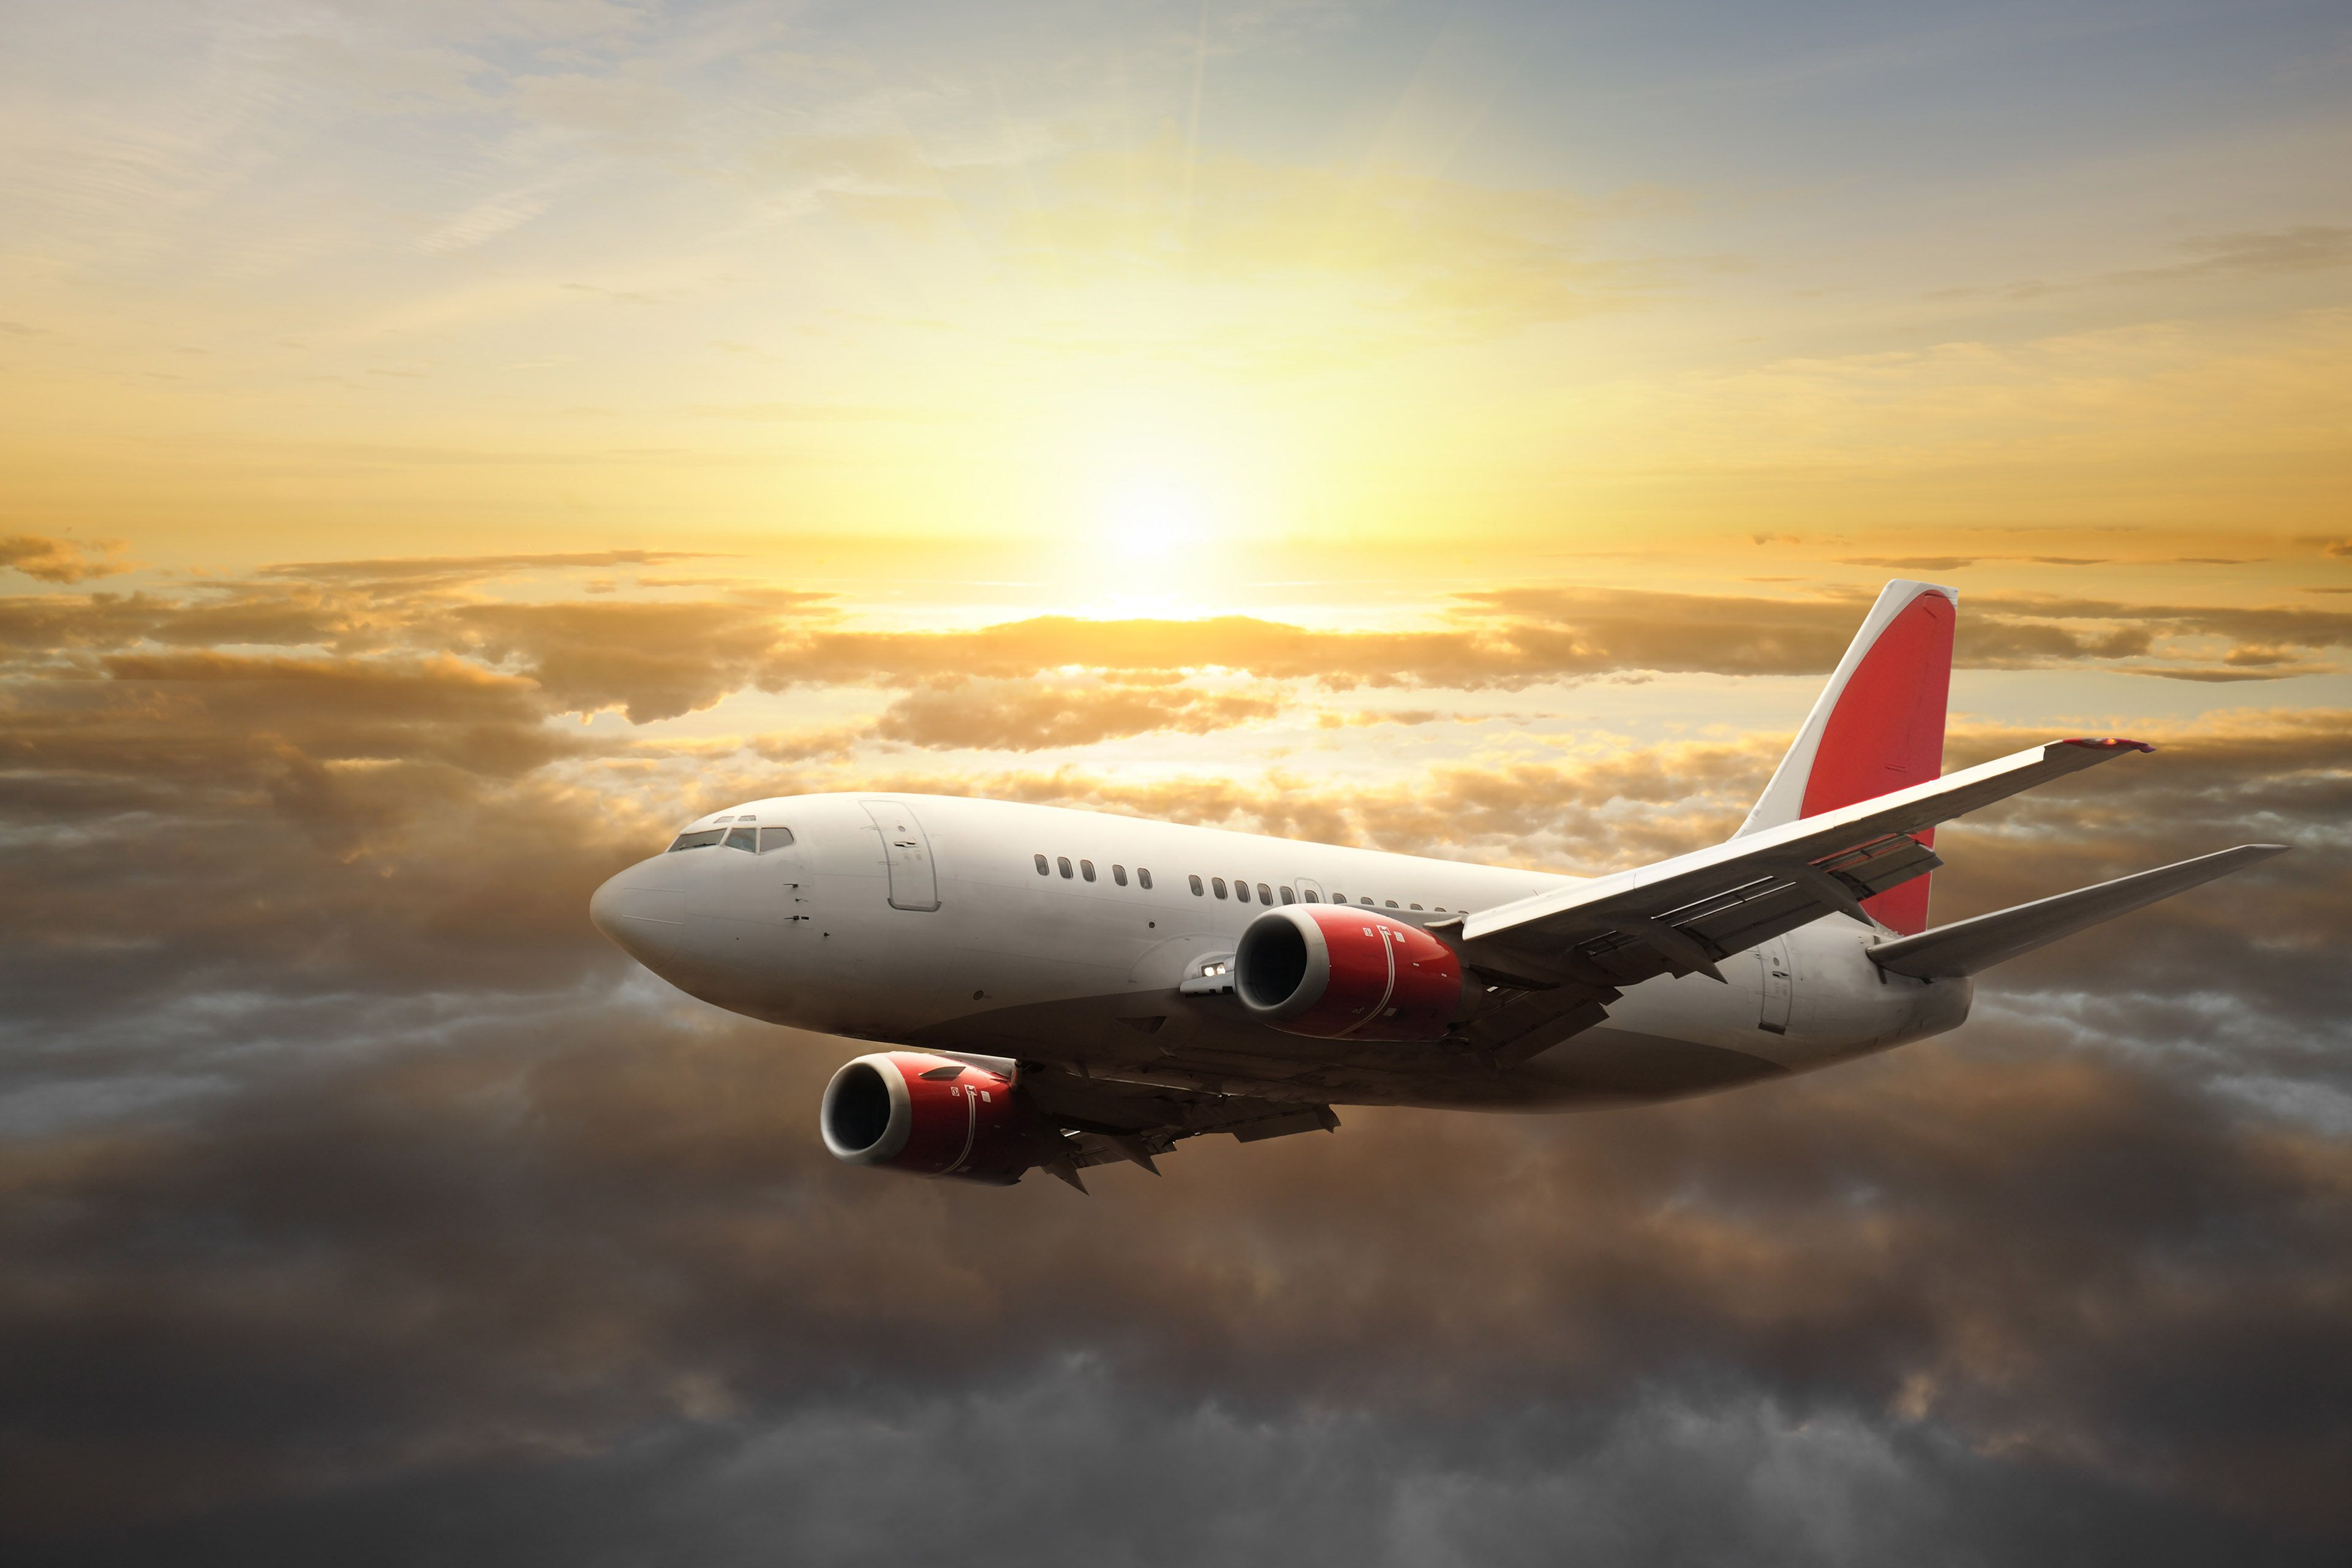 Flying Aeroplane Commercial Sun Hd Wallpapers Airplane Wallpaper Air Travel Tips Aircraft